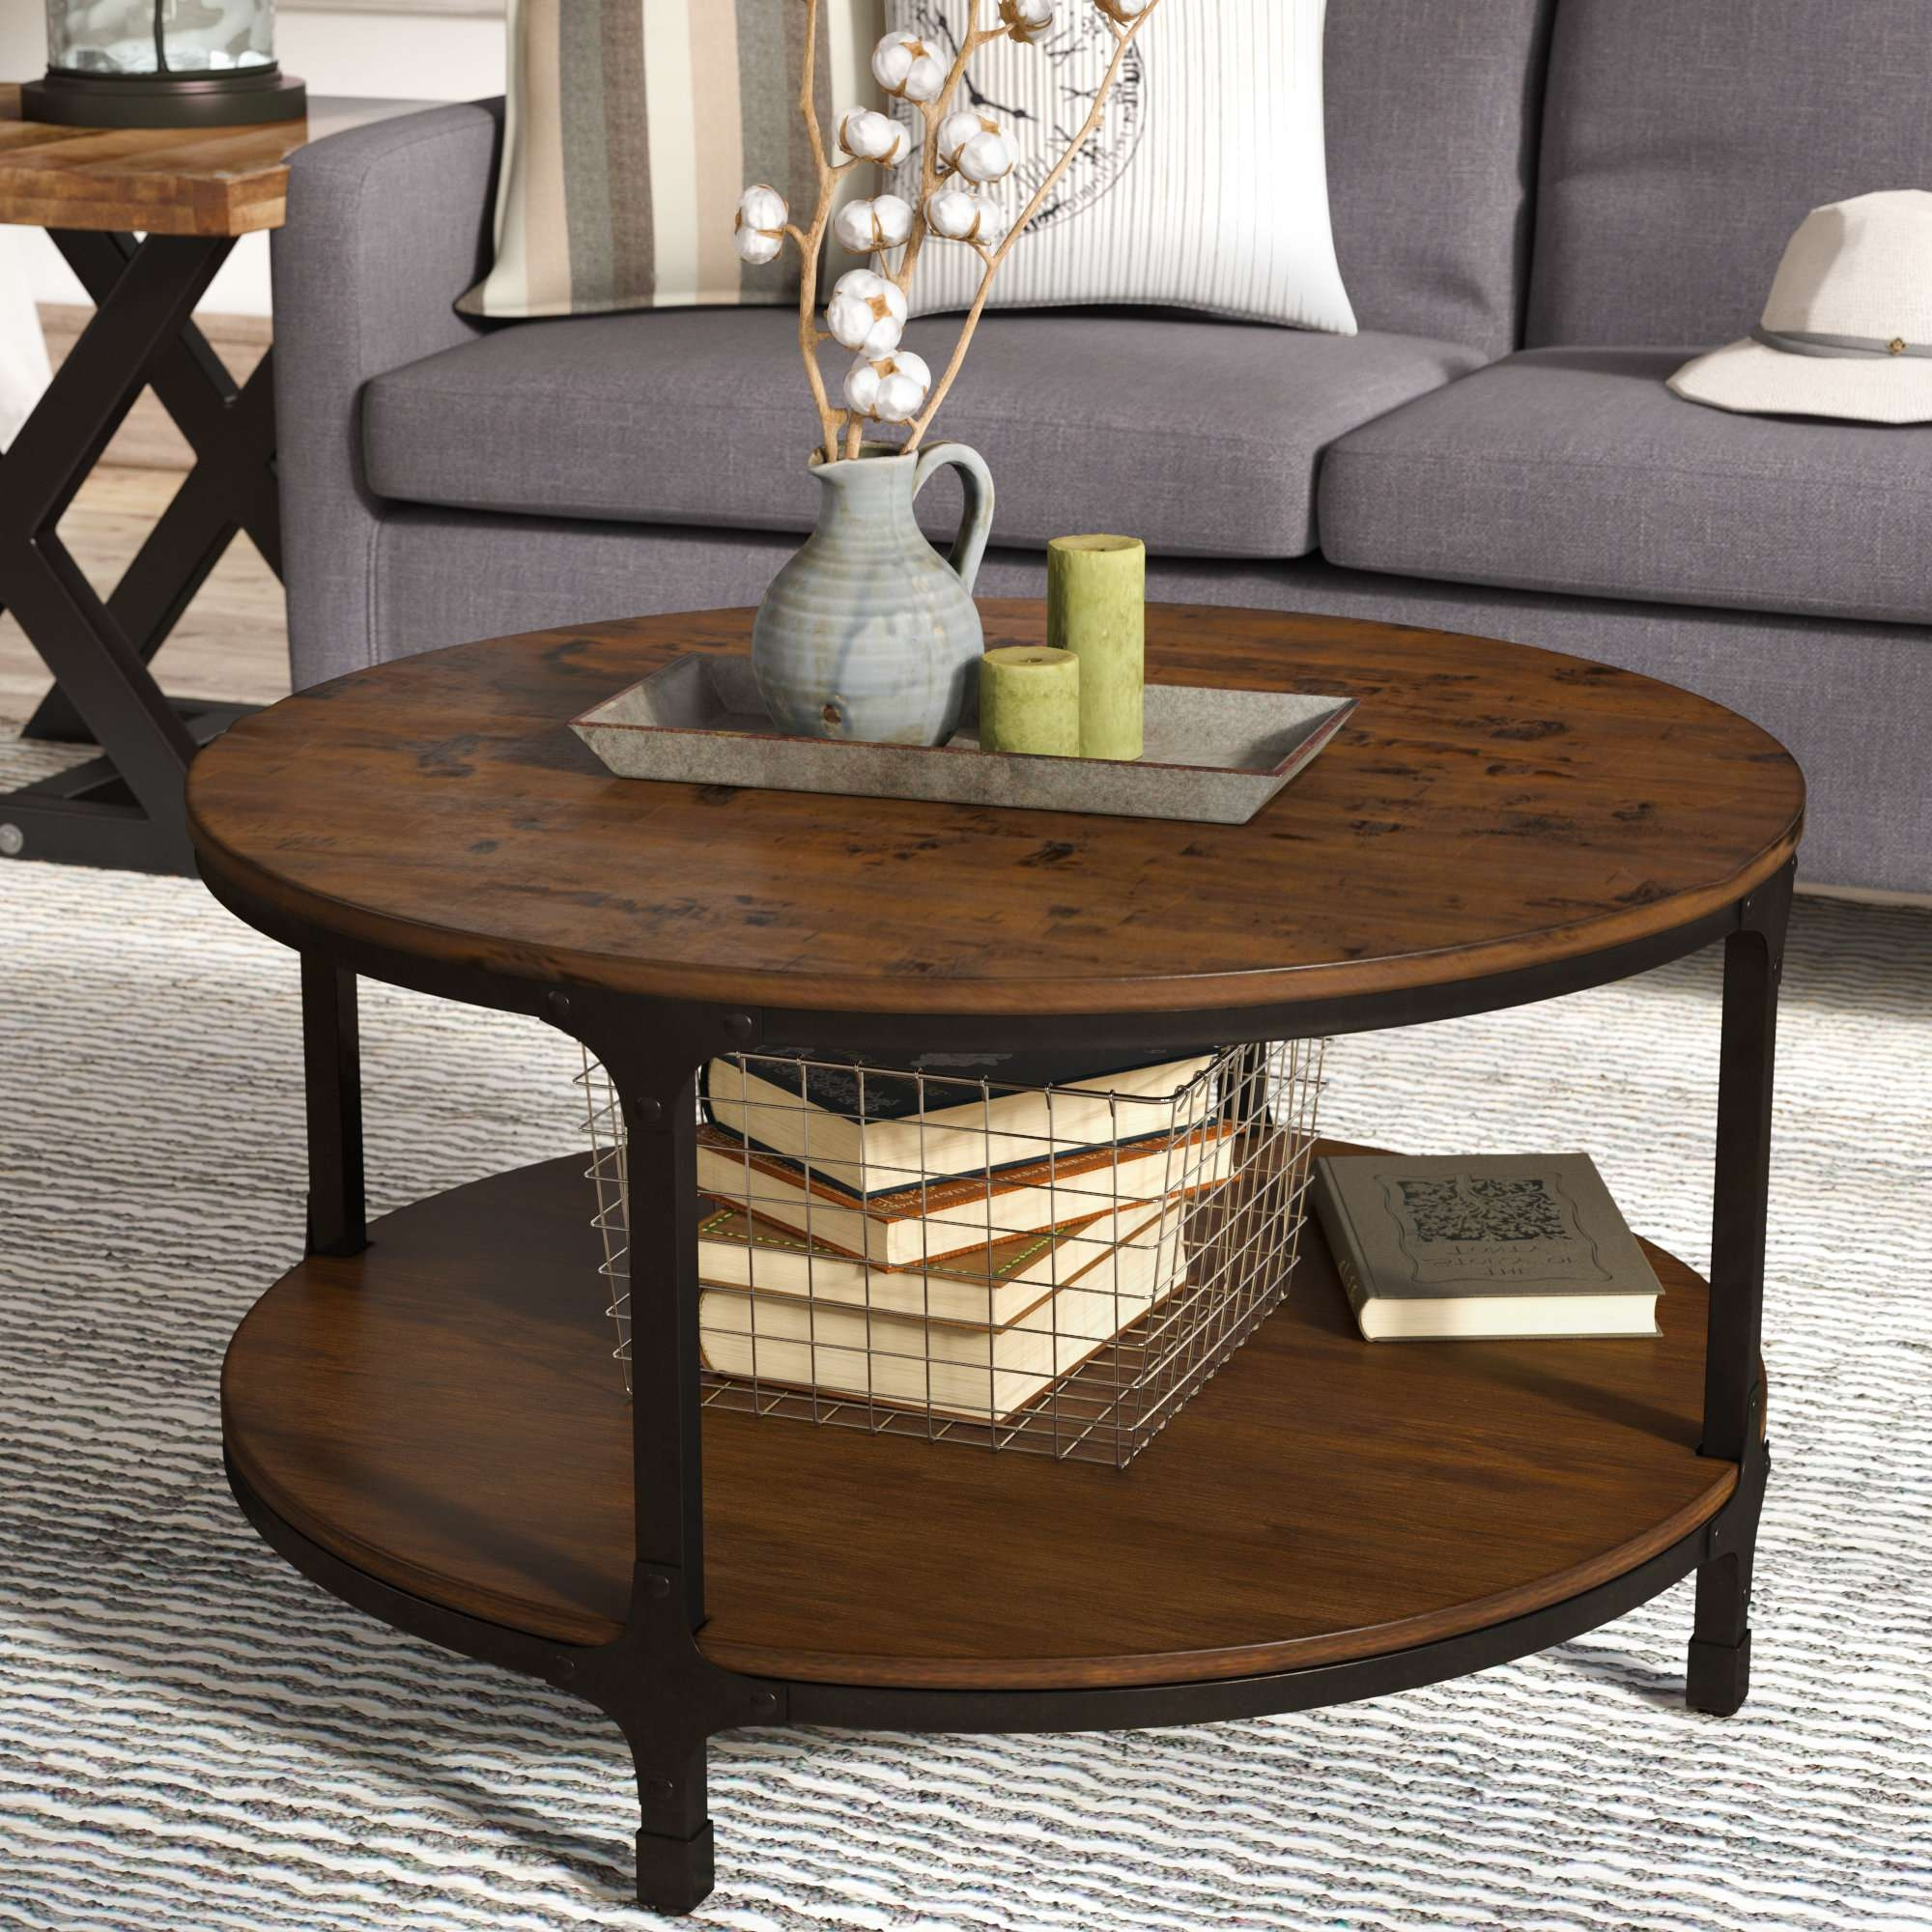 Wayfair Within Popular Small Circle Coffee Tables (View 4 of 20)